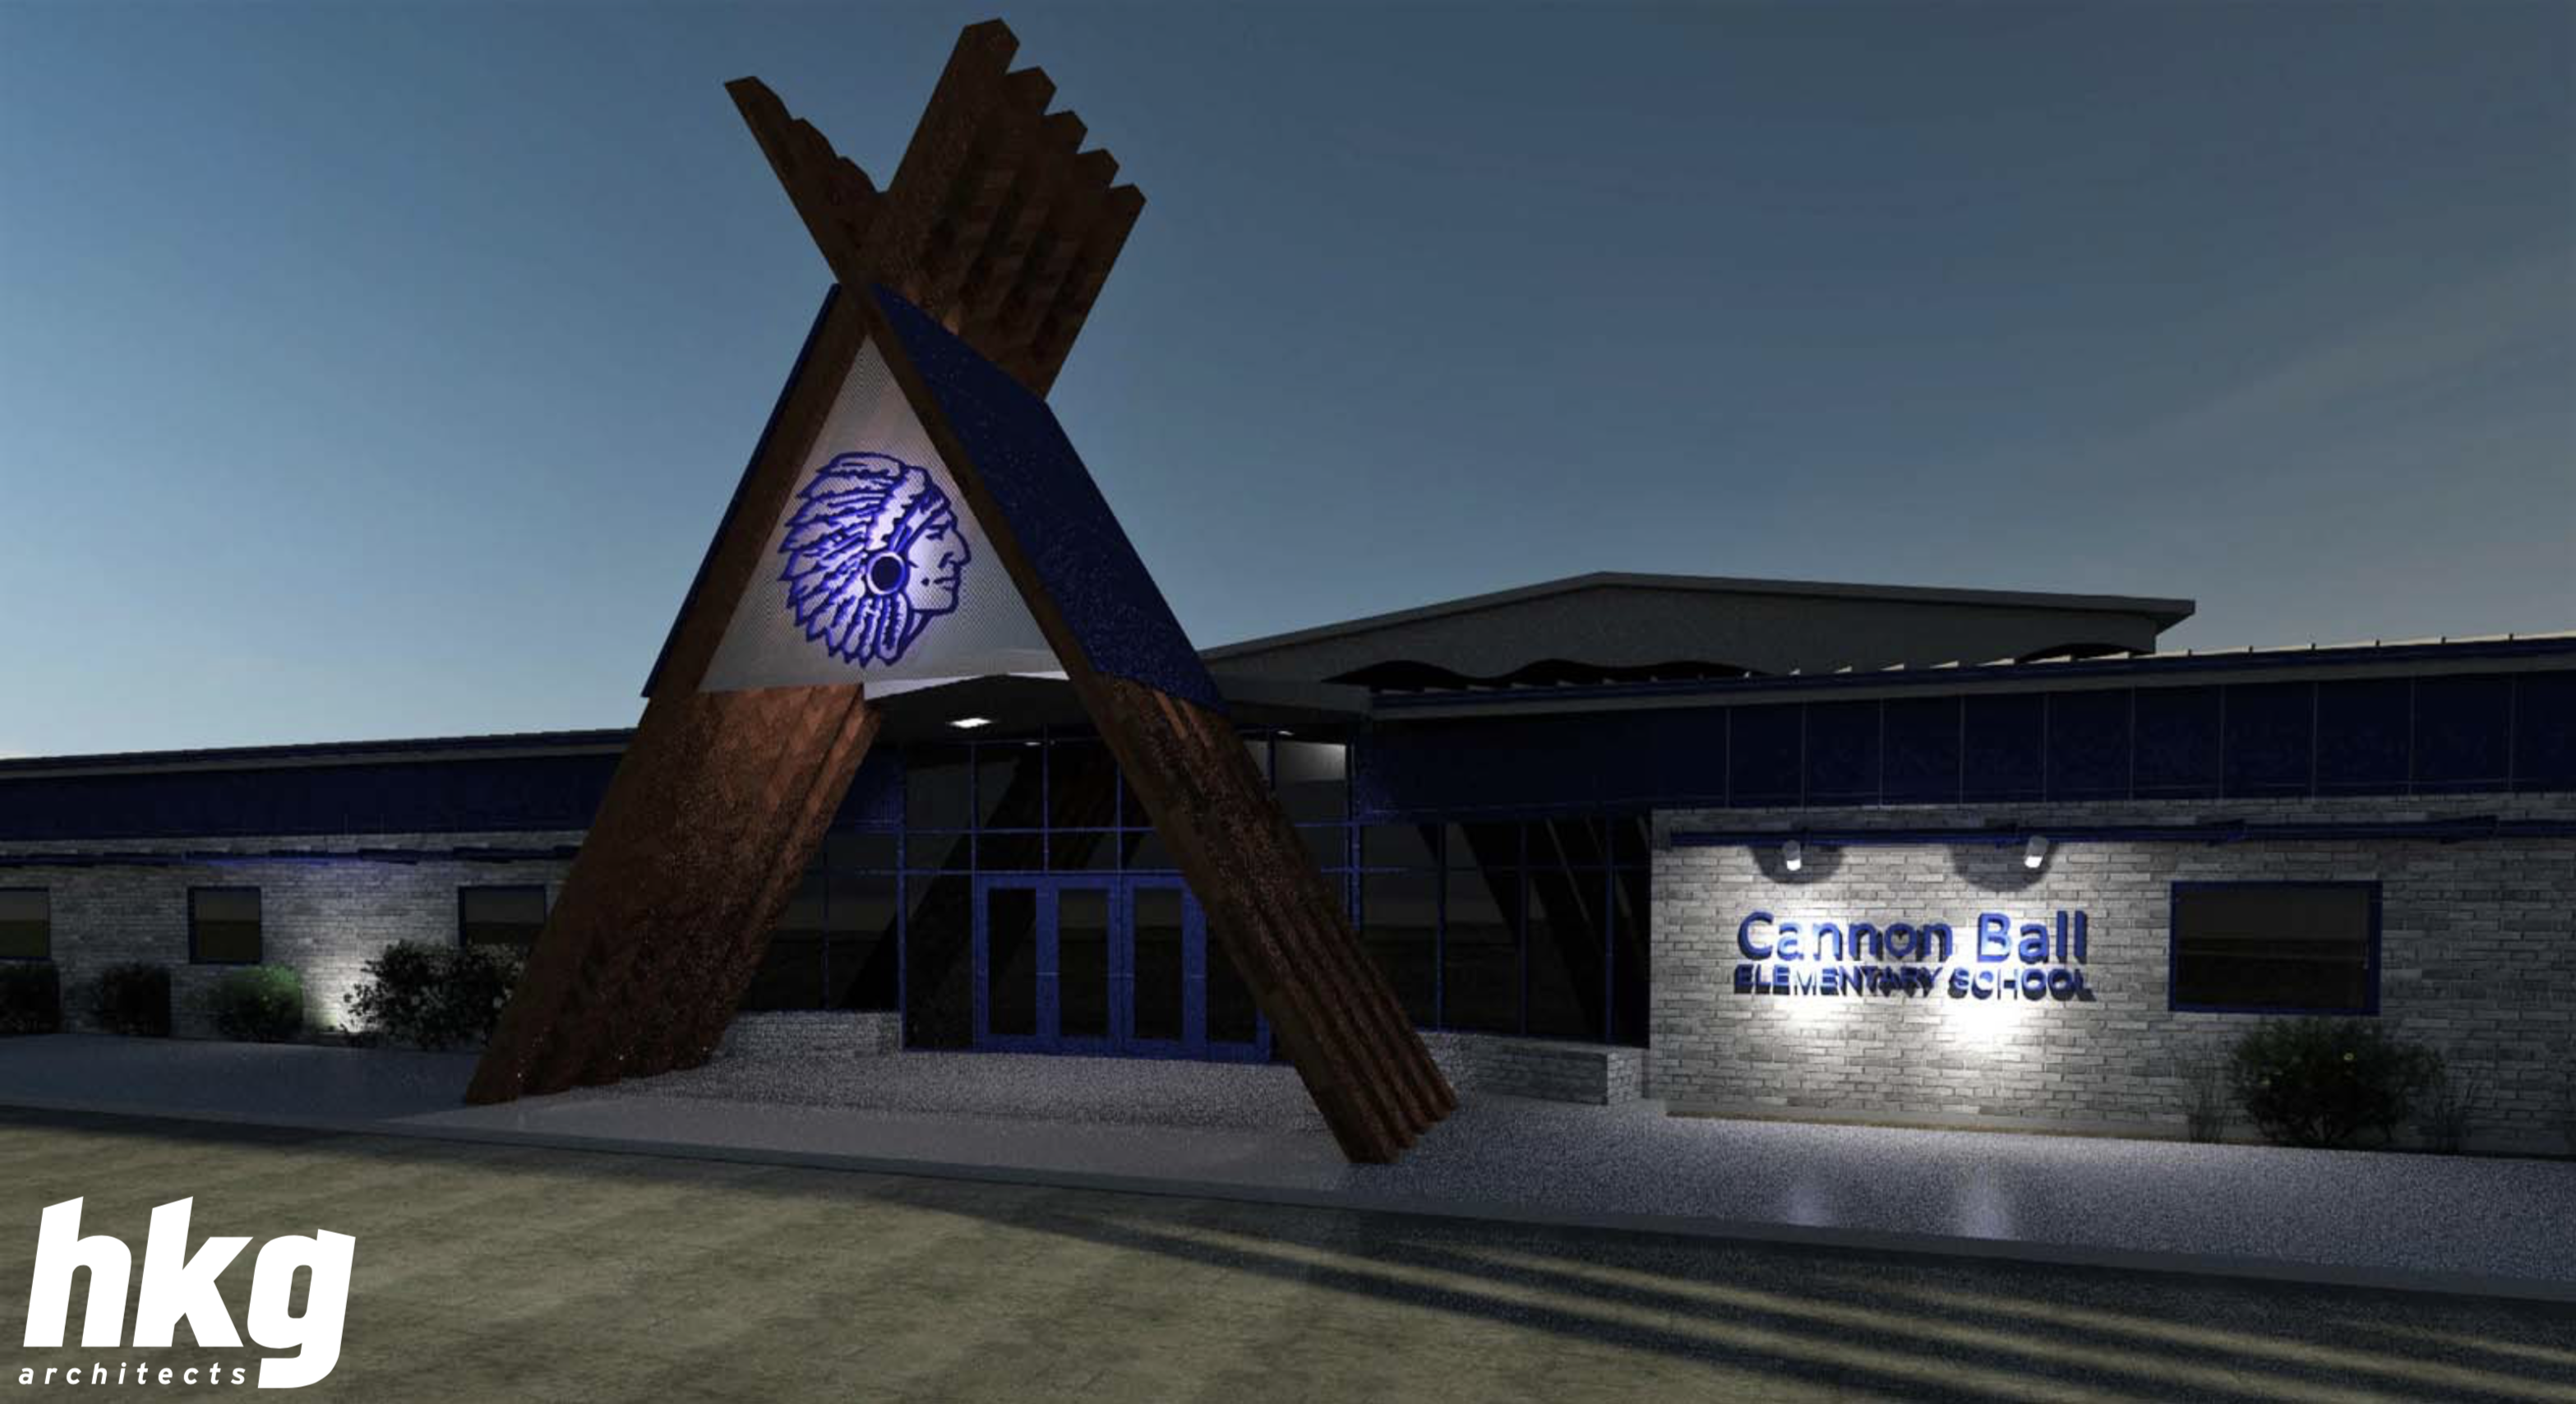 Picture of New Cannon Ball Elementary School Entrance at simulated night.